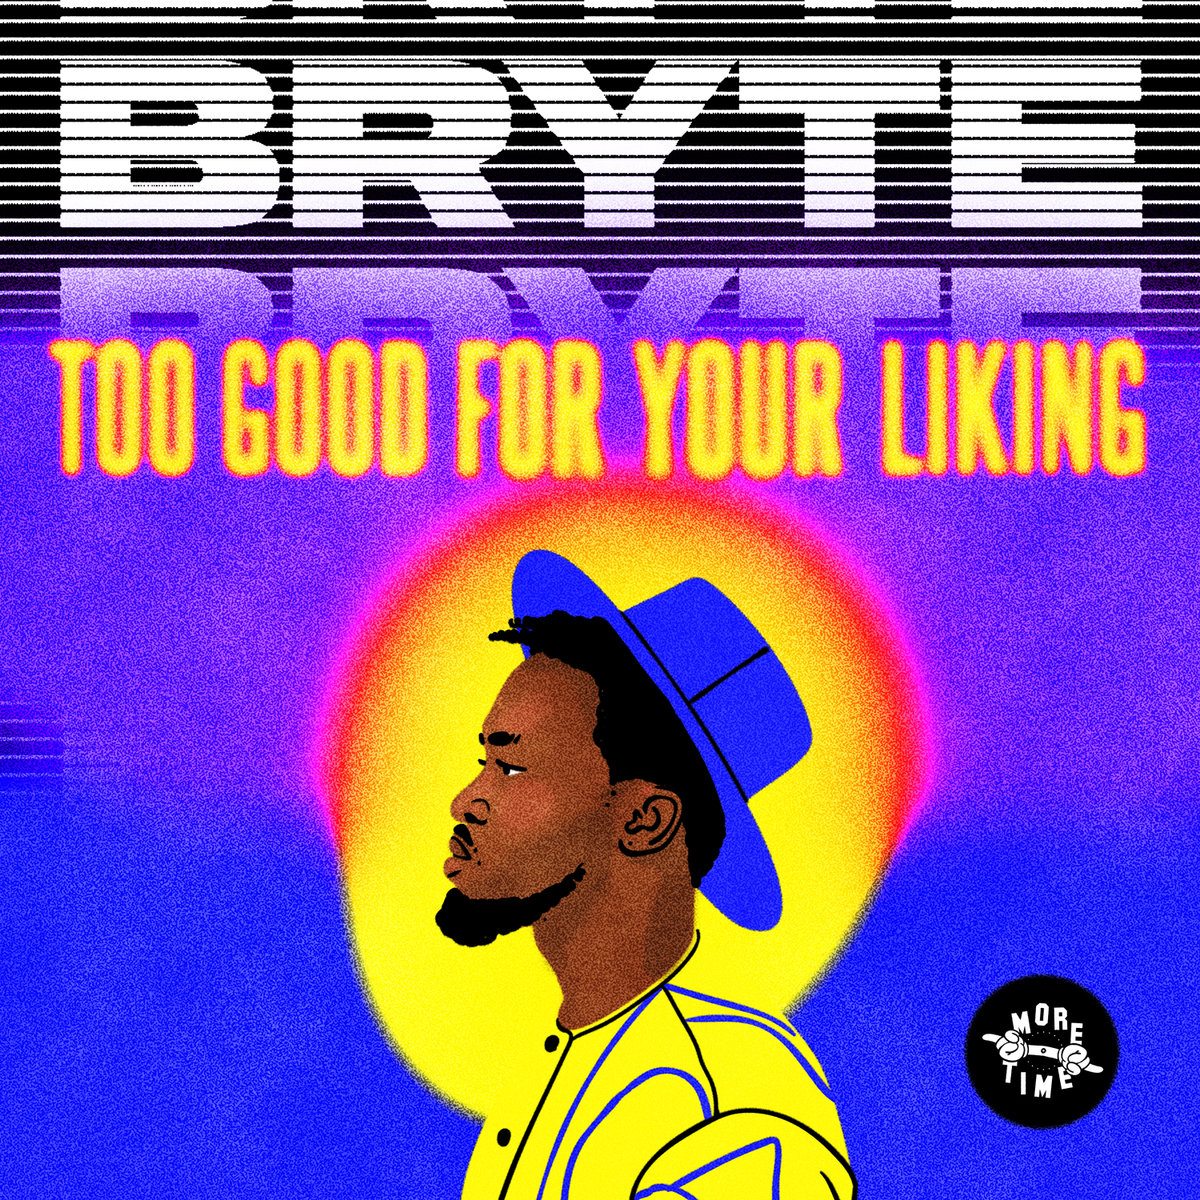 New Album from Ghana - Bryte - Too good for your liking Album